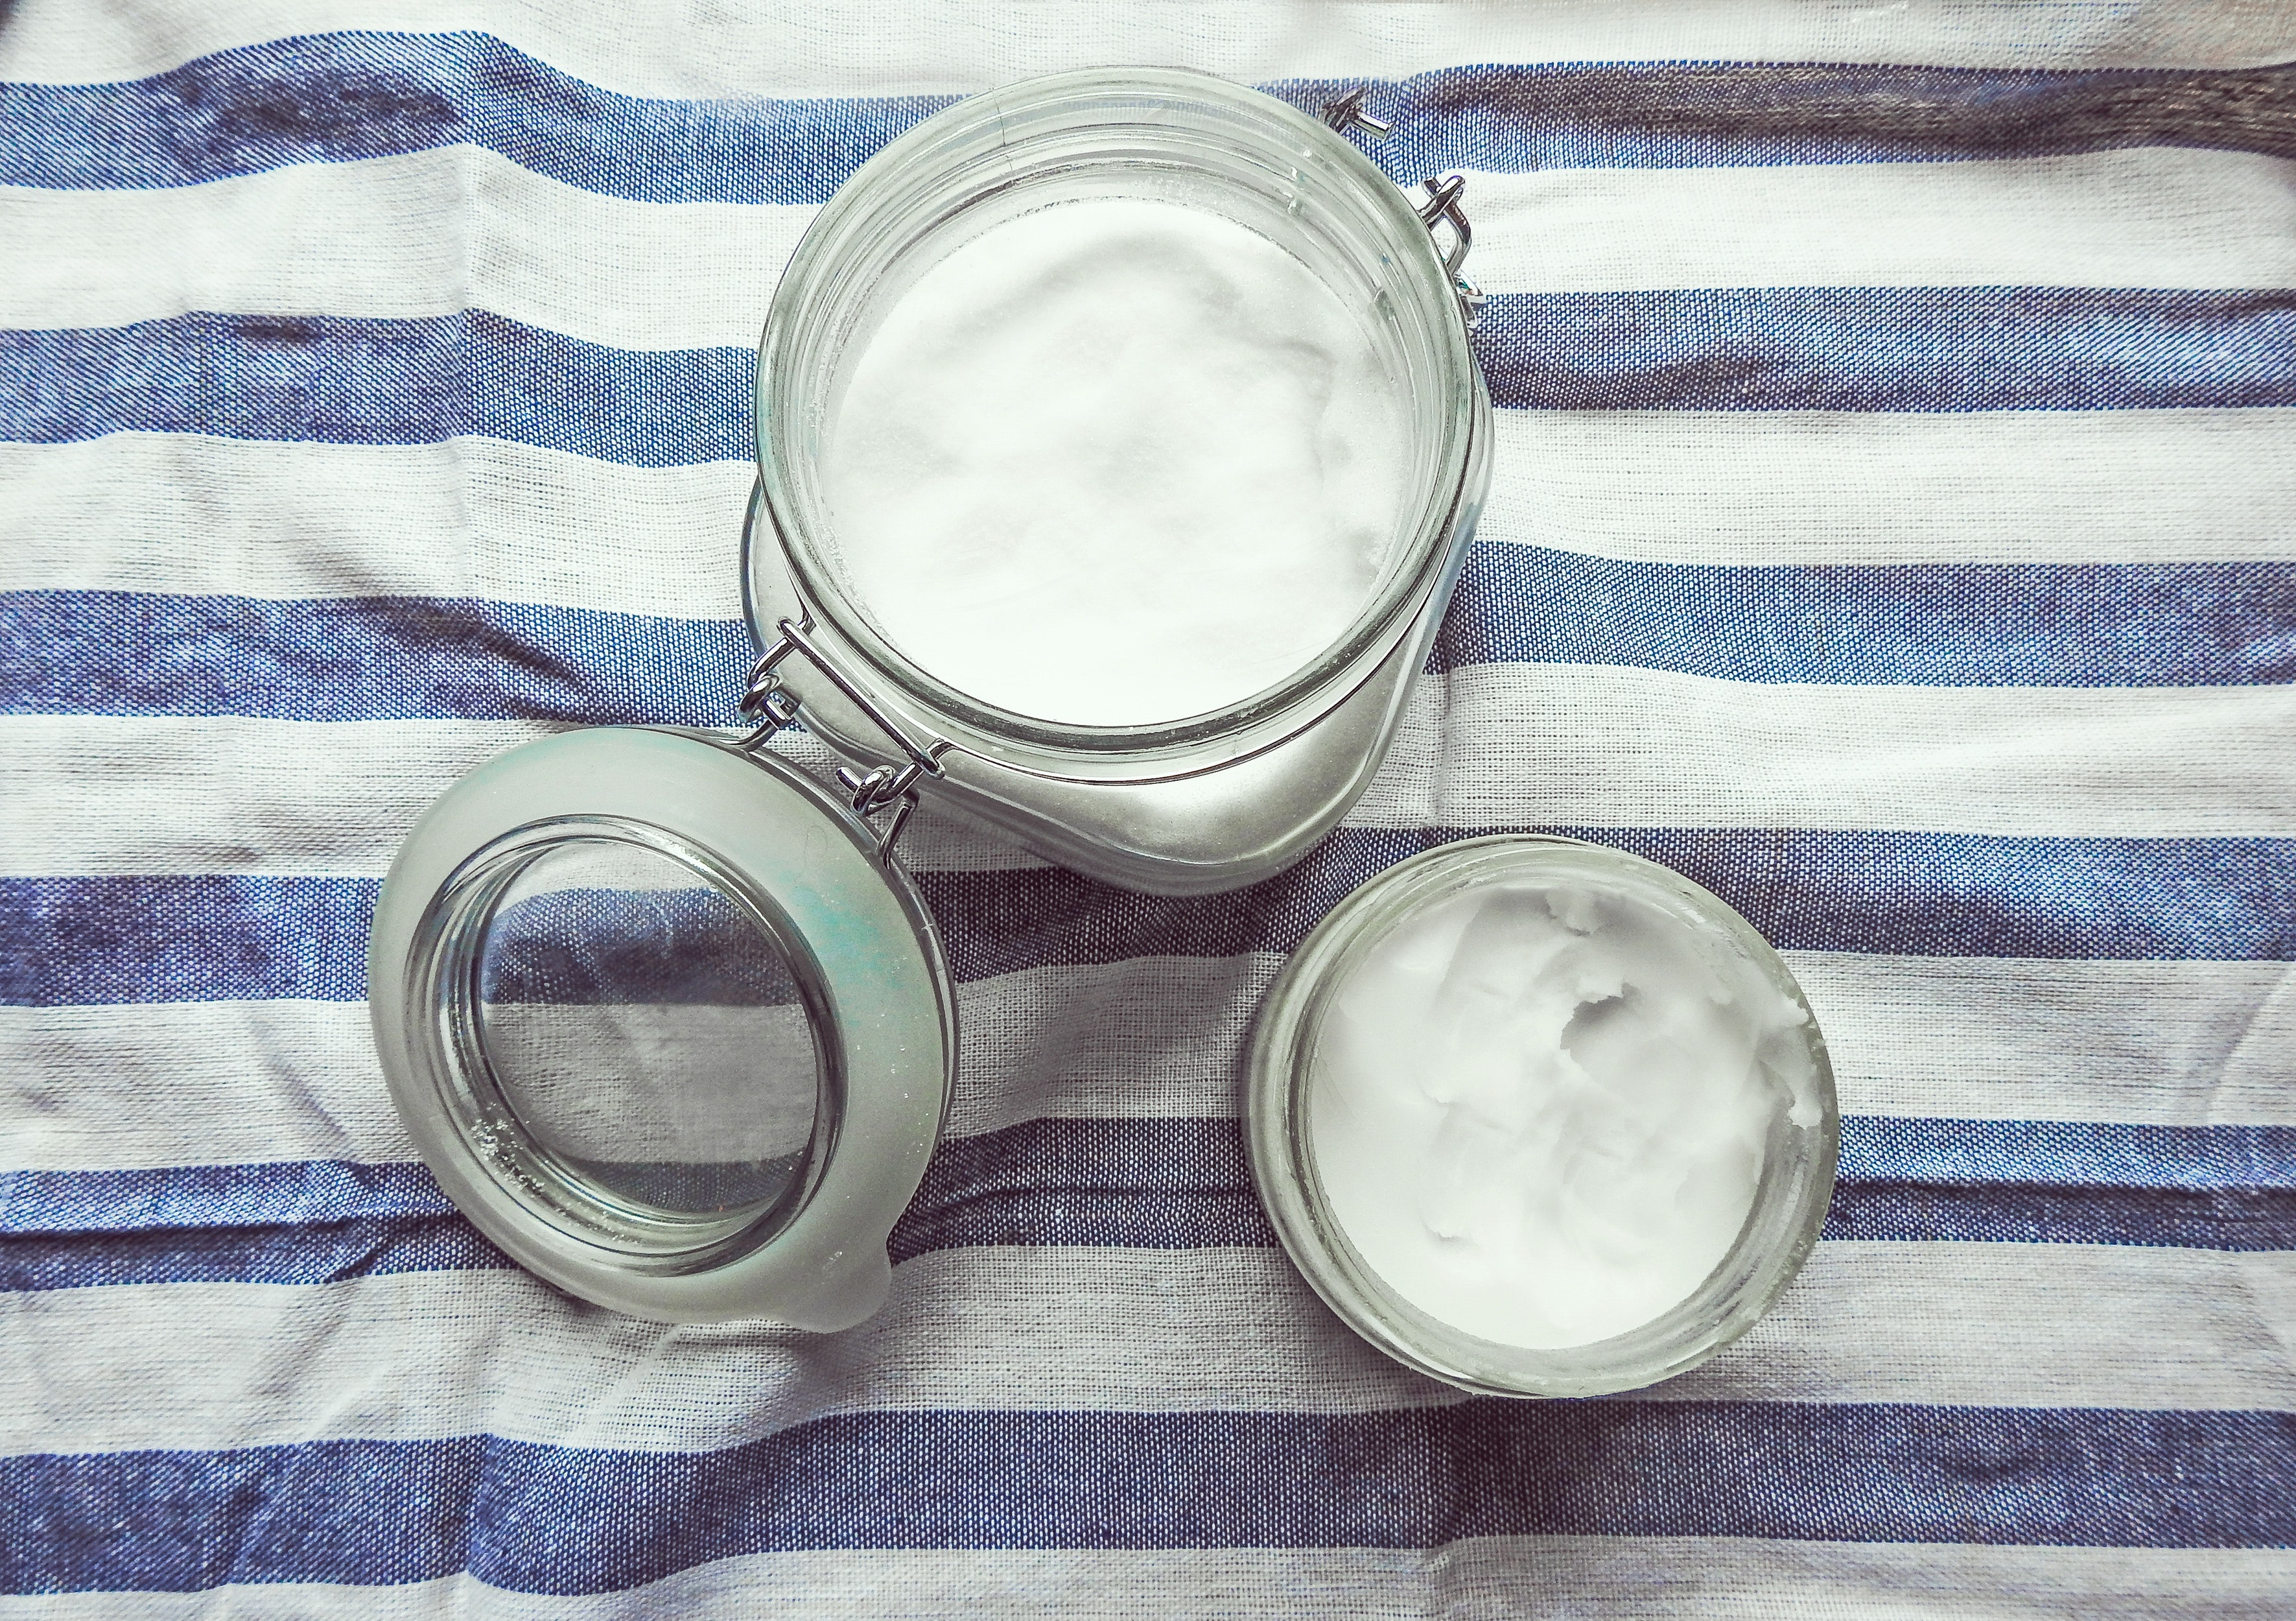 6 Recipes for Homemade Beauty Products